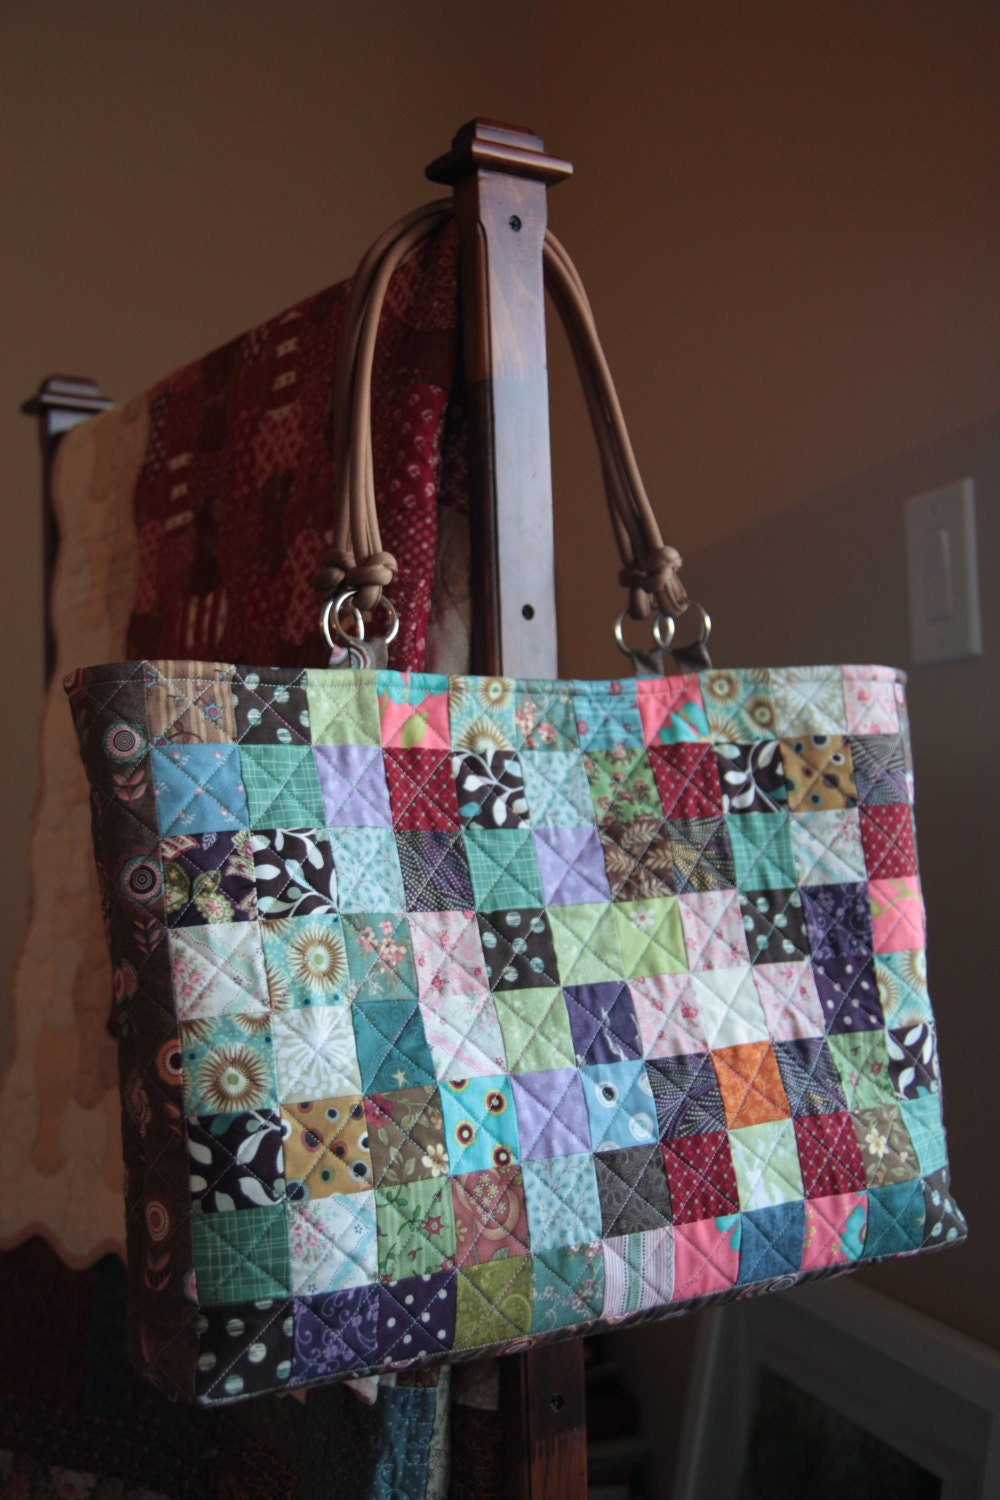 handmade quilted handbags - photo #24